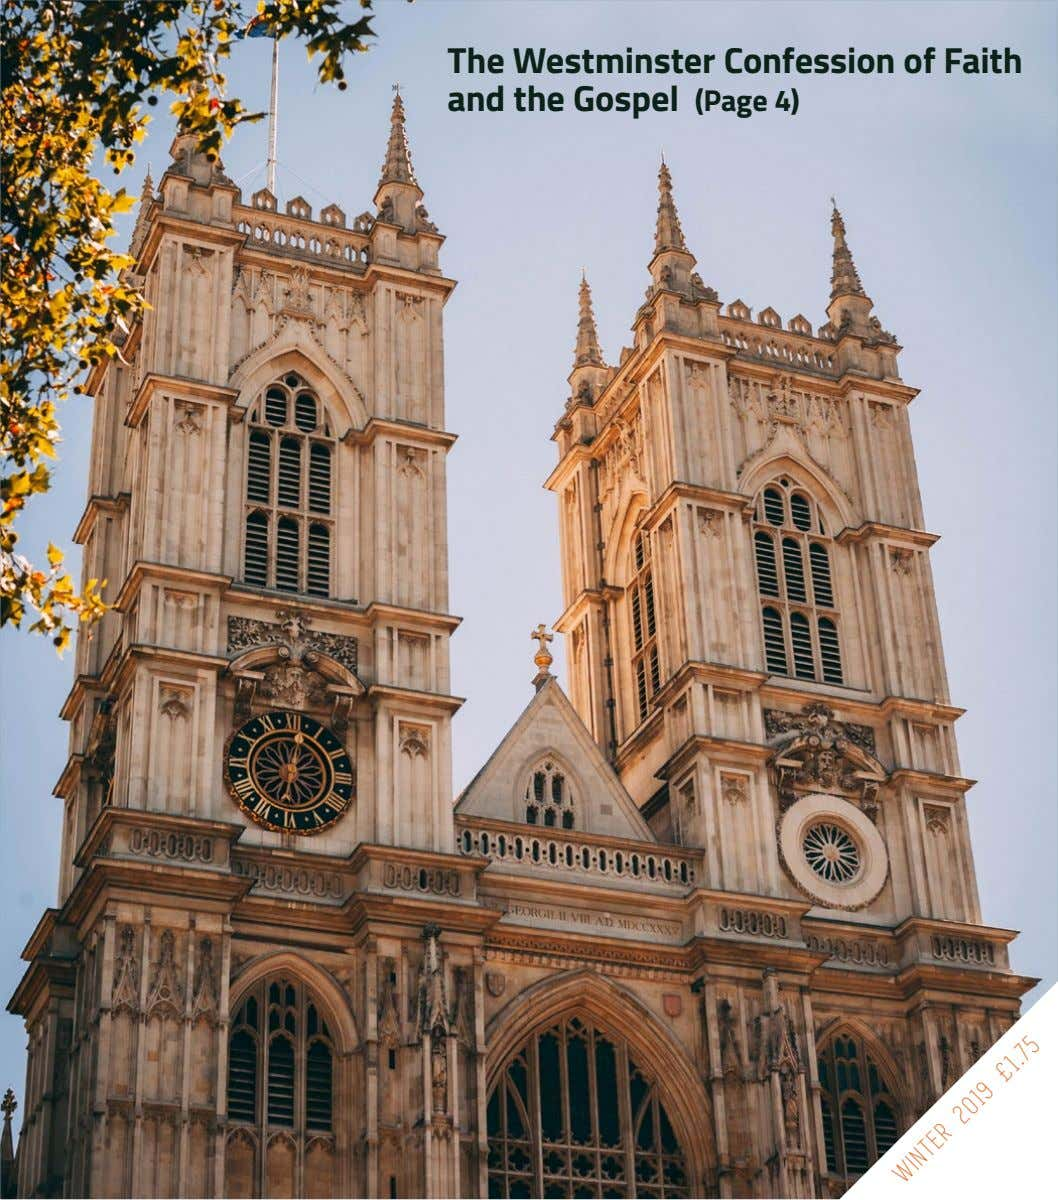 The Westminster Confession of Faith and the Gospel (Page 4) WINTER 2019 £1.75